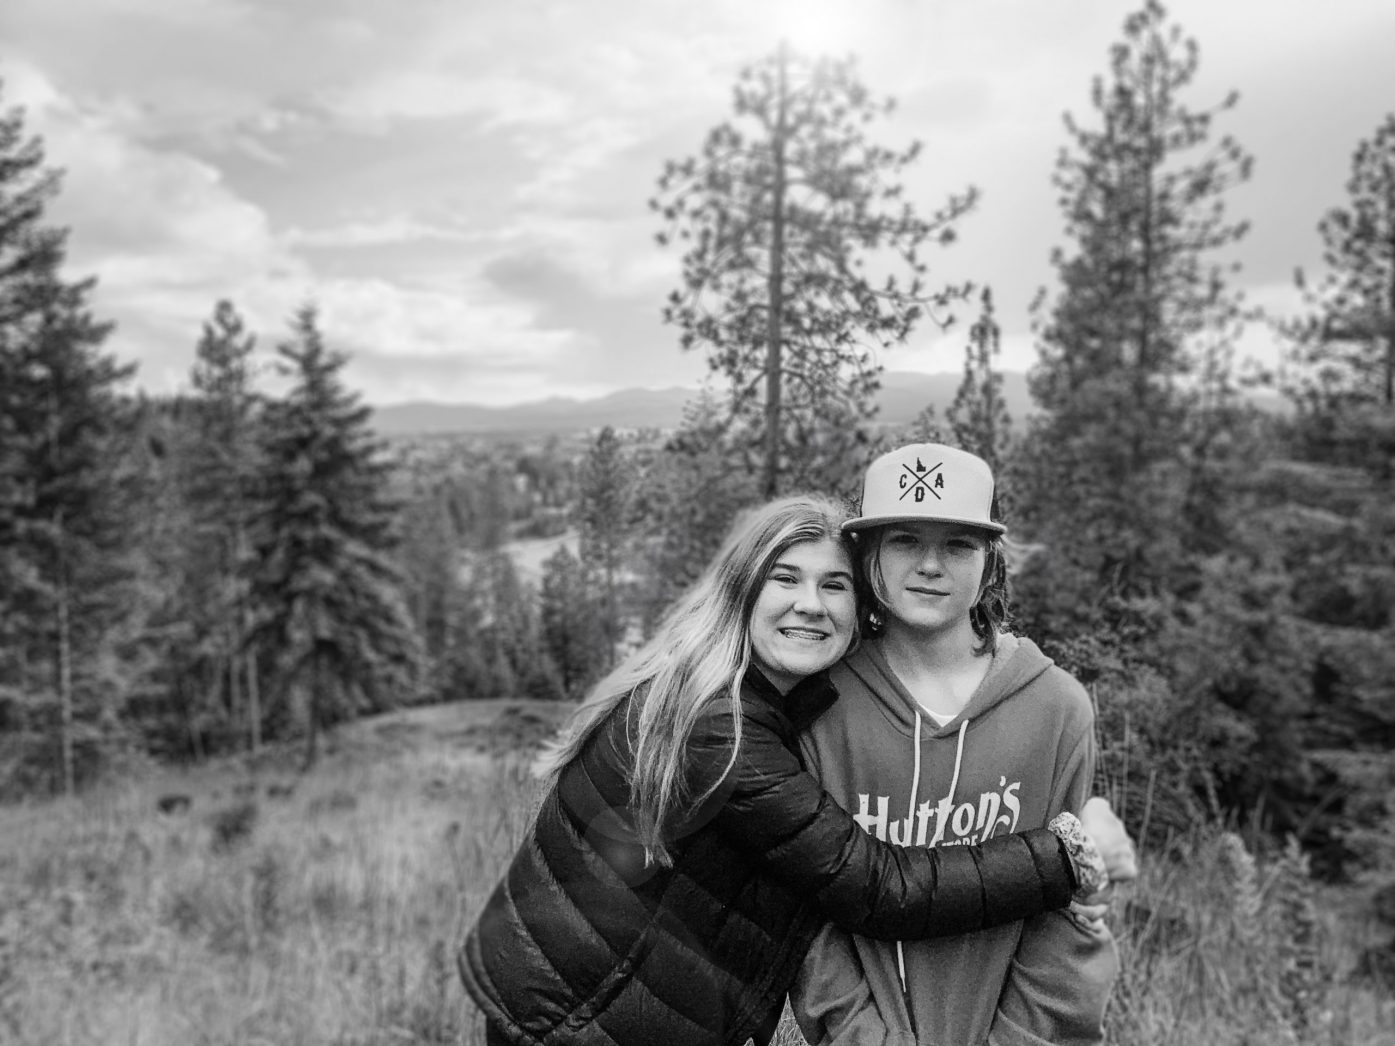 personal update about our move to Idaho